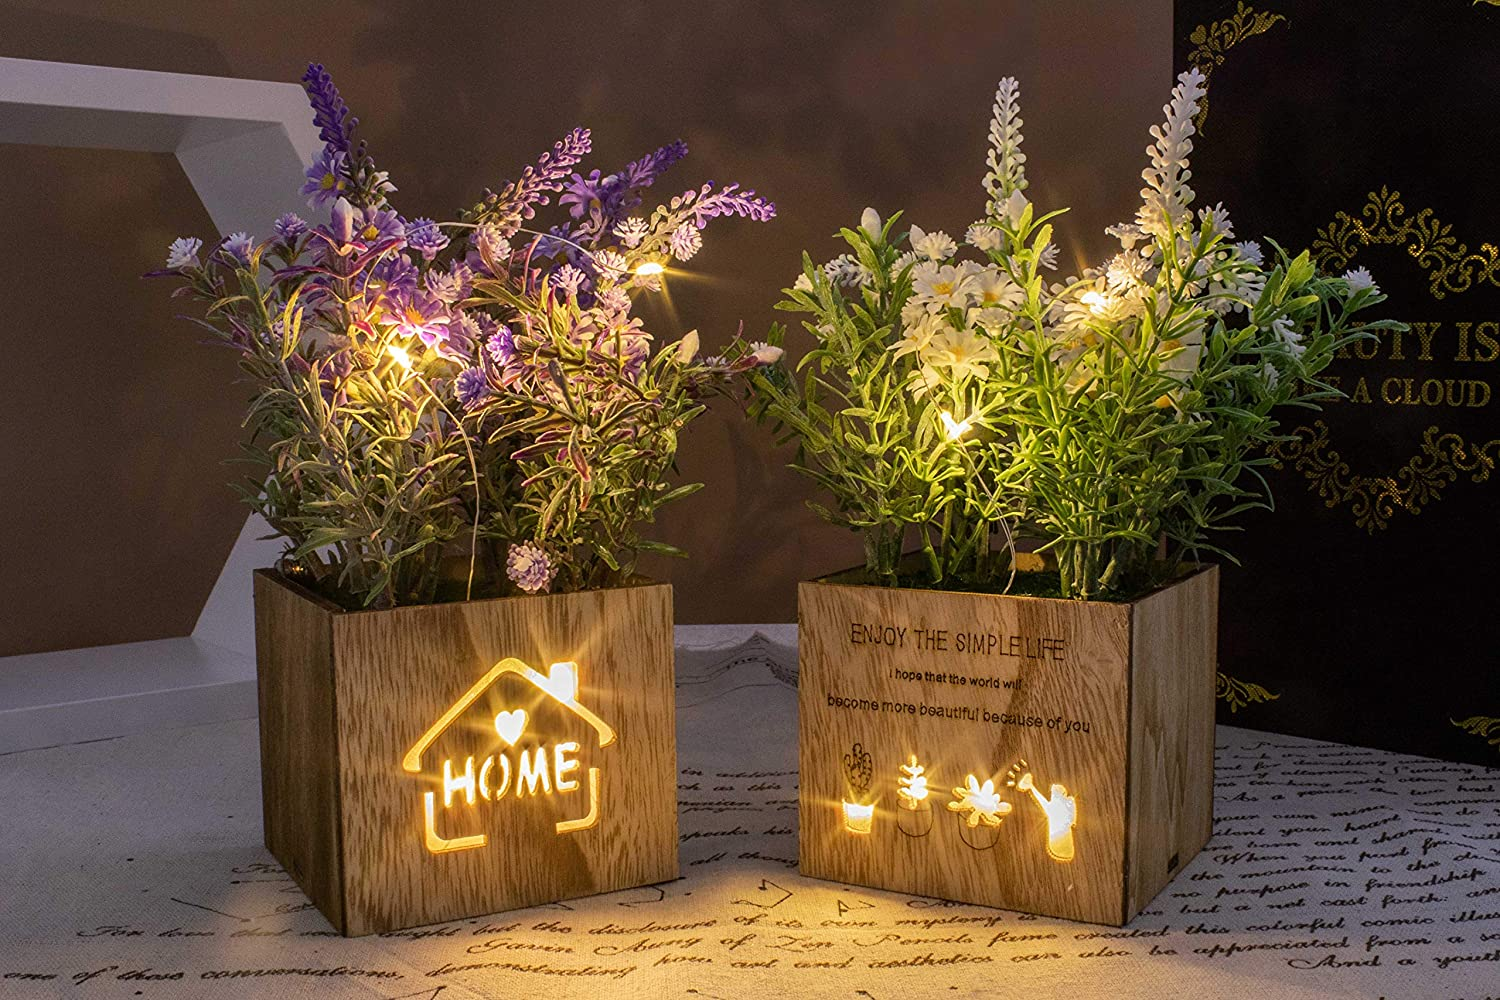 BEGONDIS Set of 2 Artificial Flowers with Led Lights in Wooden Box, Artificial Plants Plastic Fake Topiary for Home/Office Decorations, Table Centerpiece (led Flower Set of 2)